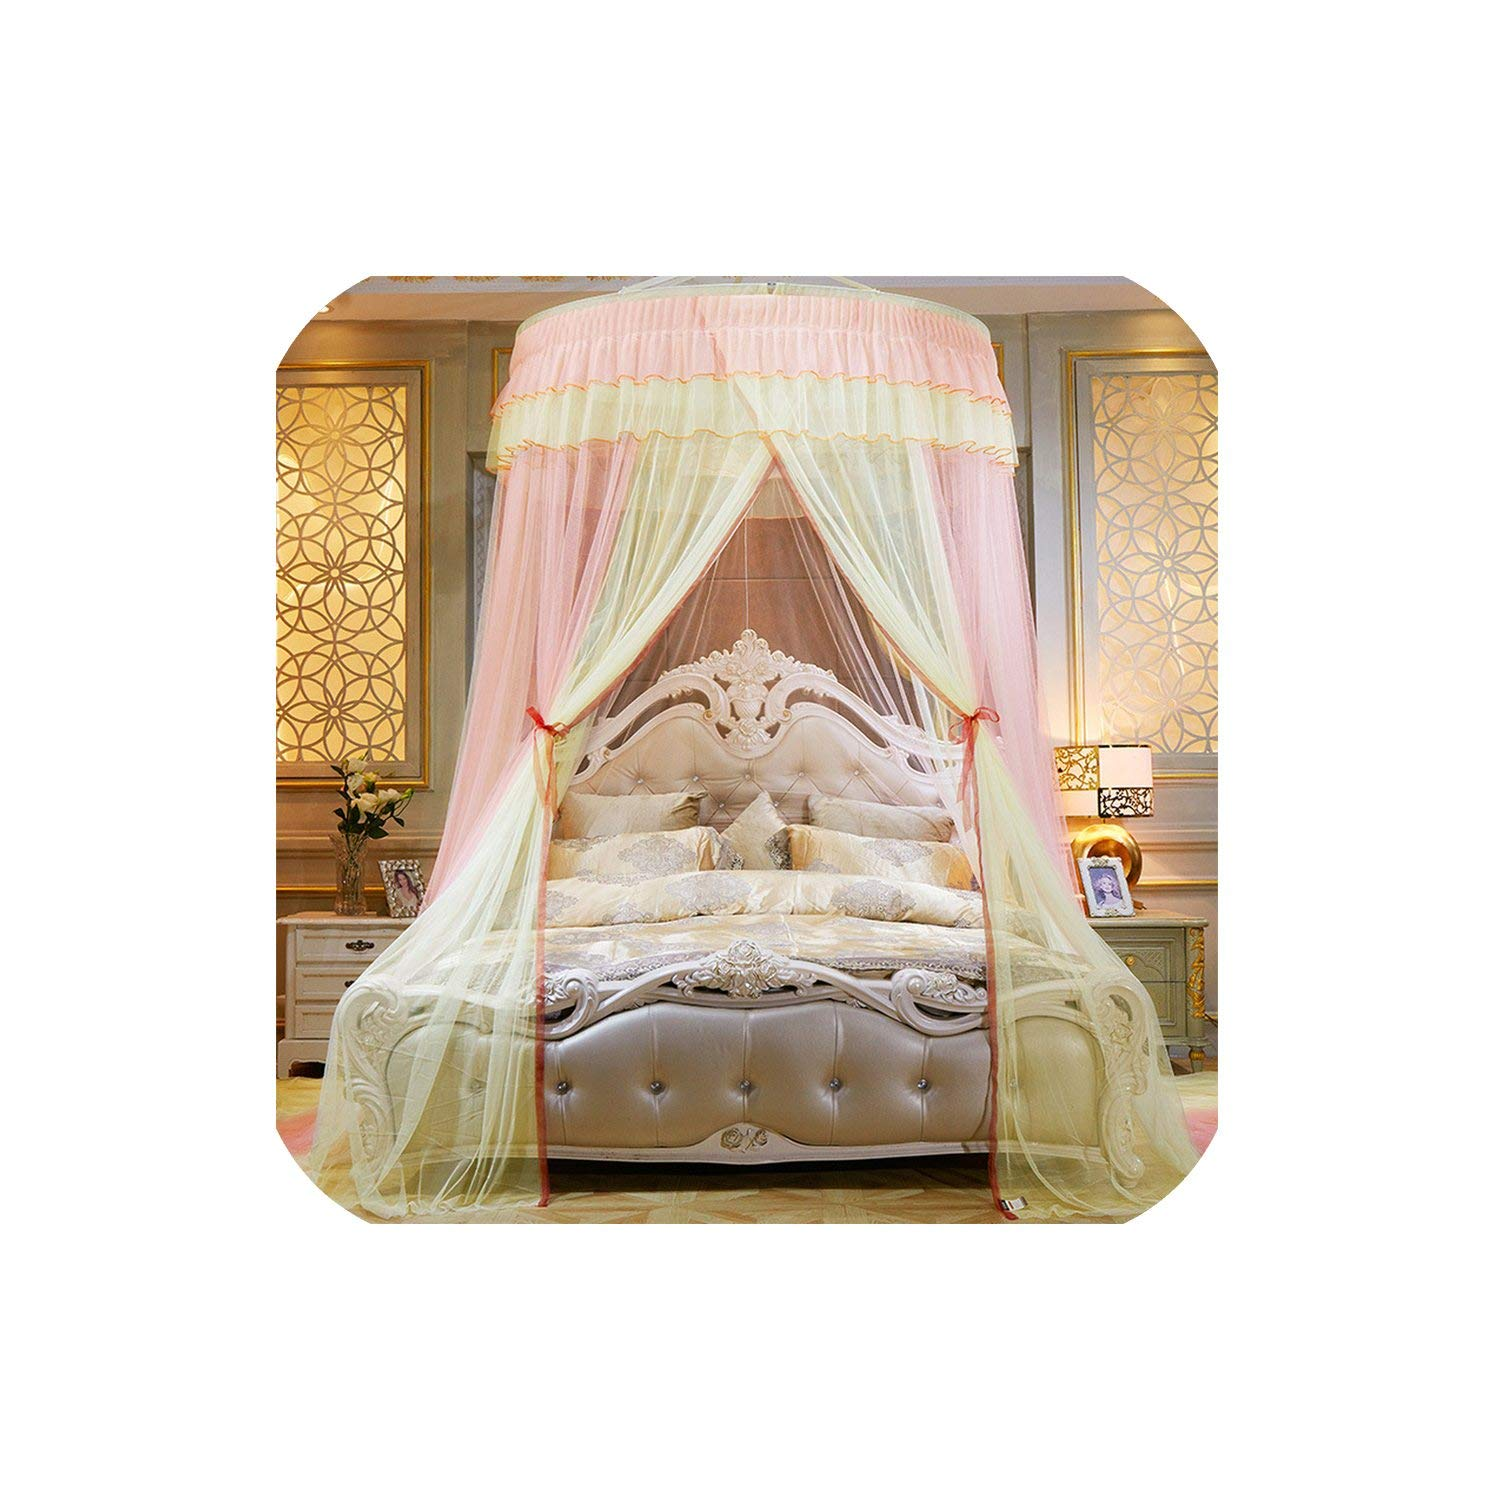 Colorful Mosquito Net Princess Insect Net Single Door Hung Dome Bed Canopies Netting Round Mosquito Net Commonly Used,3